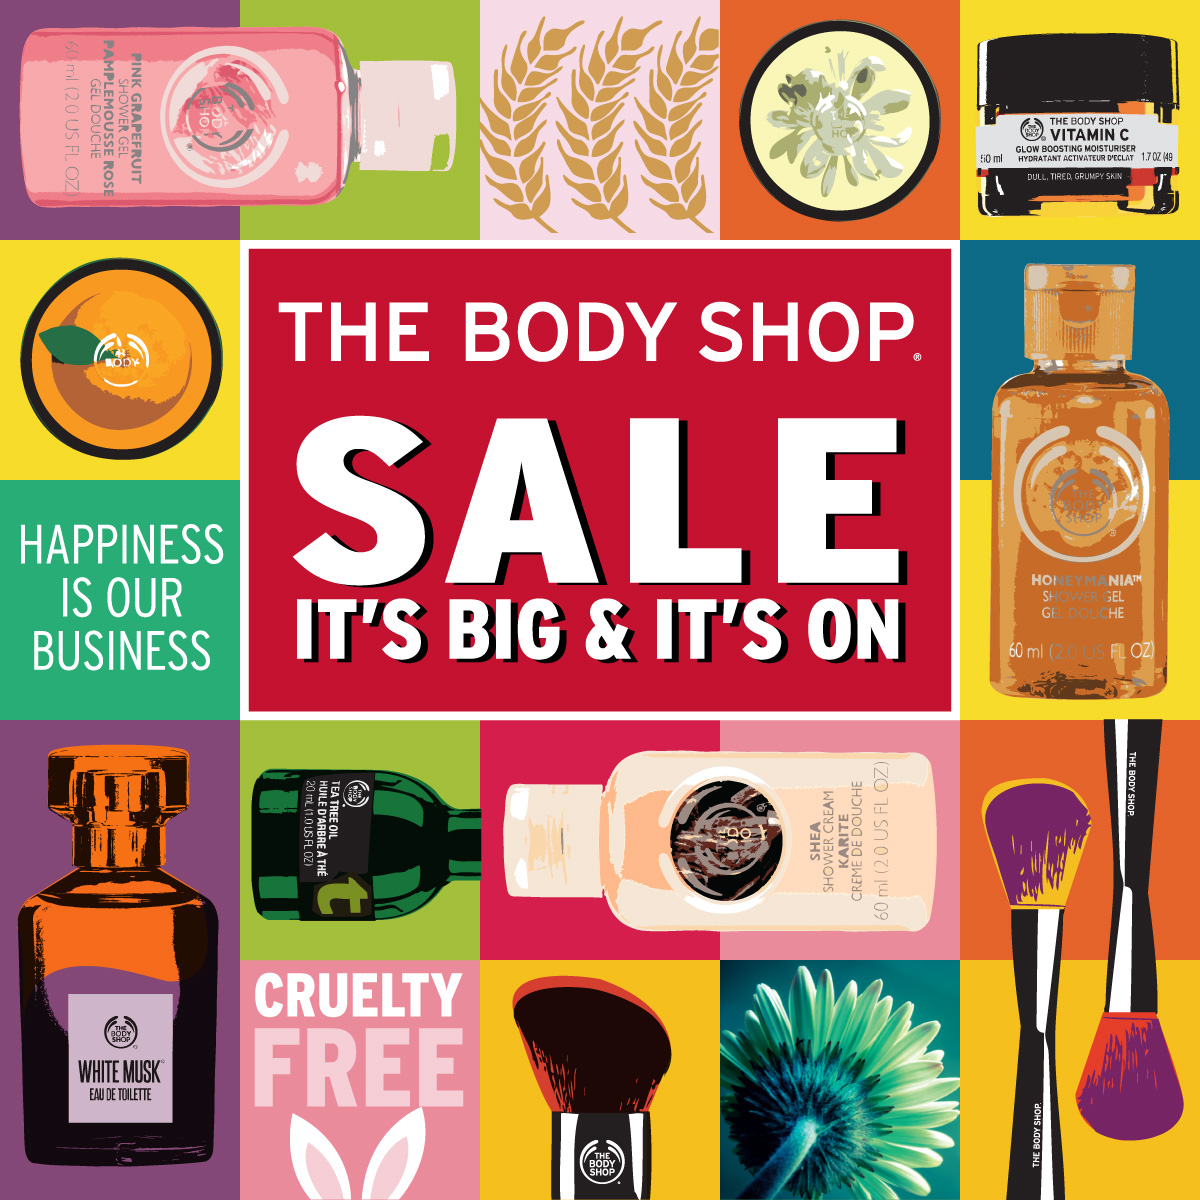 The Body Shop August 2017 Highlights